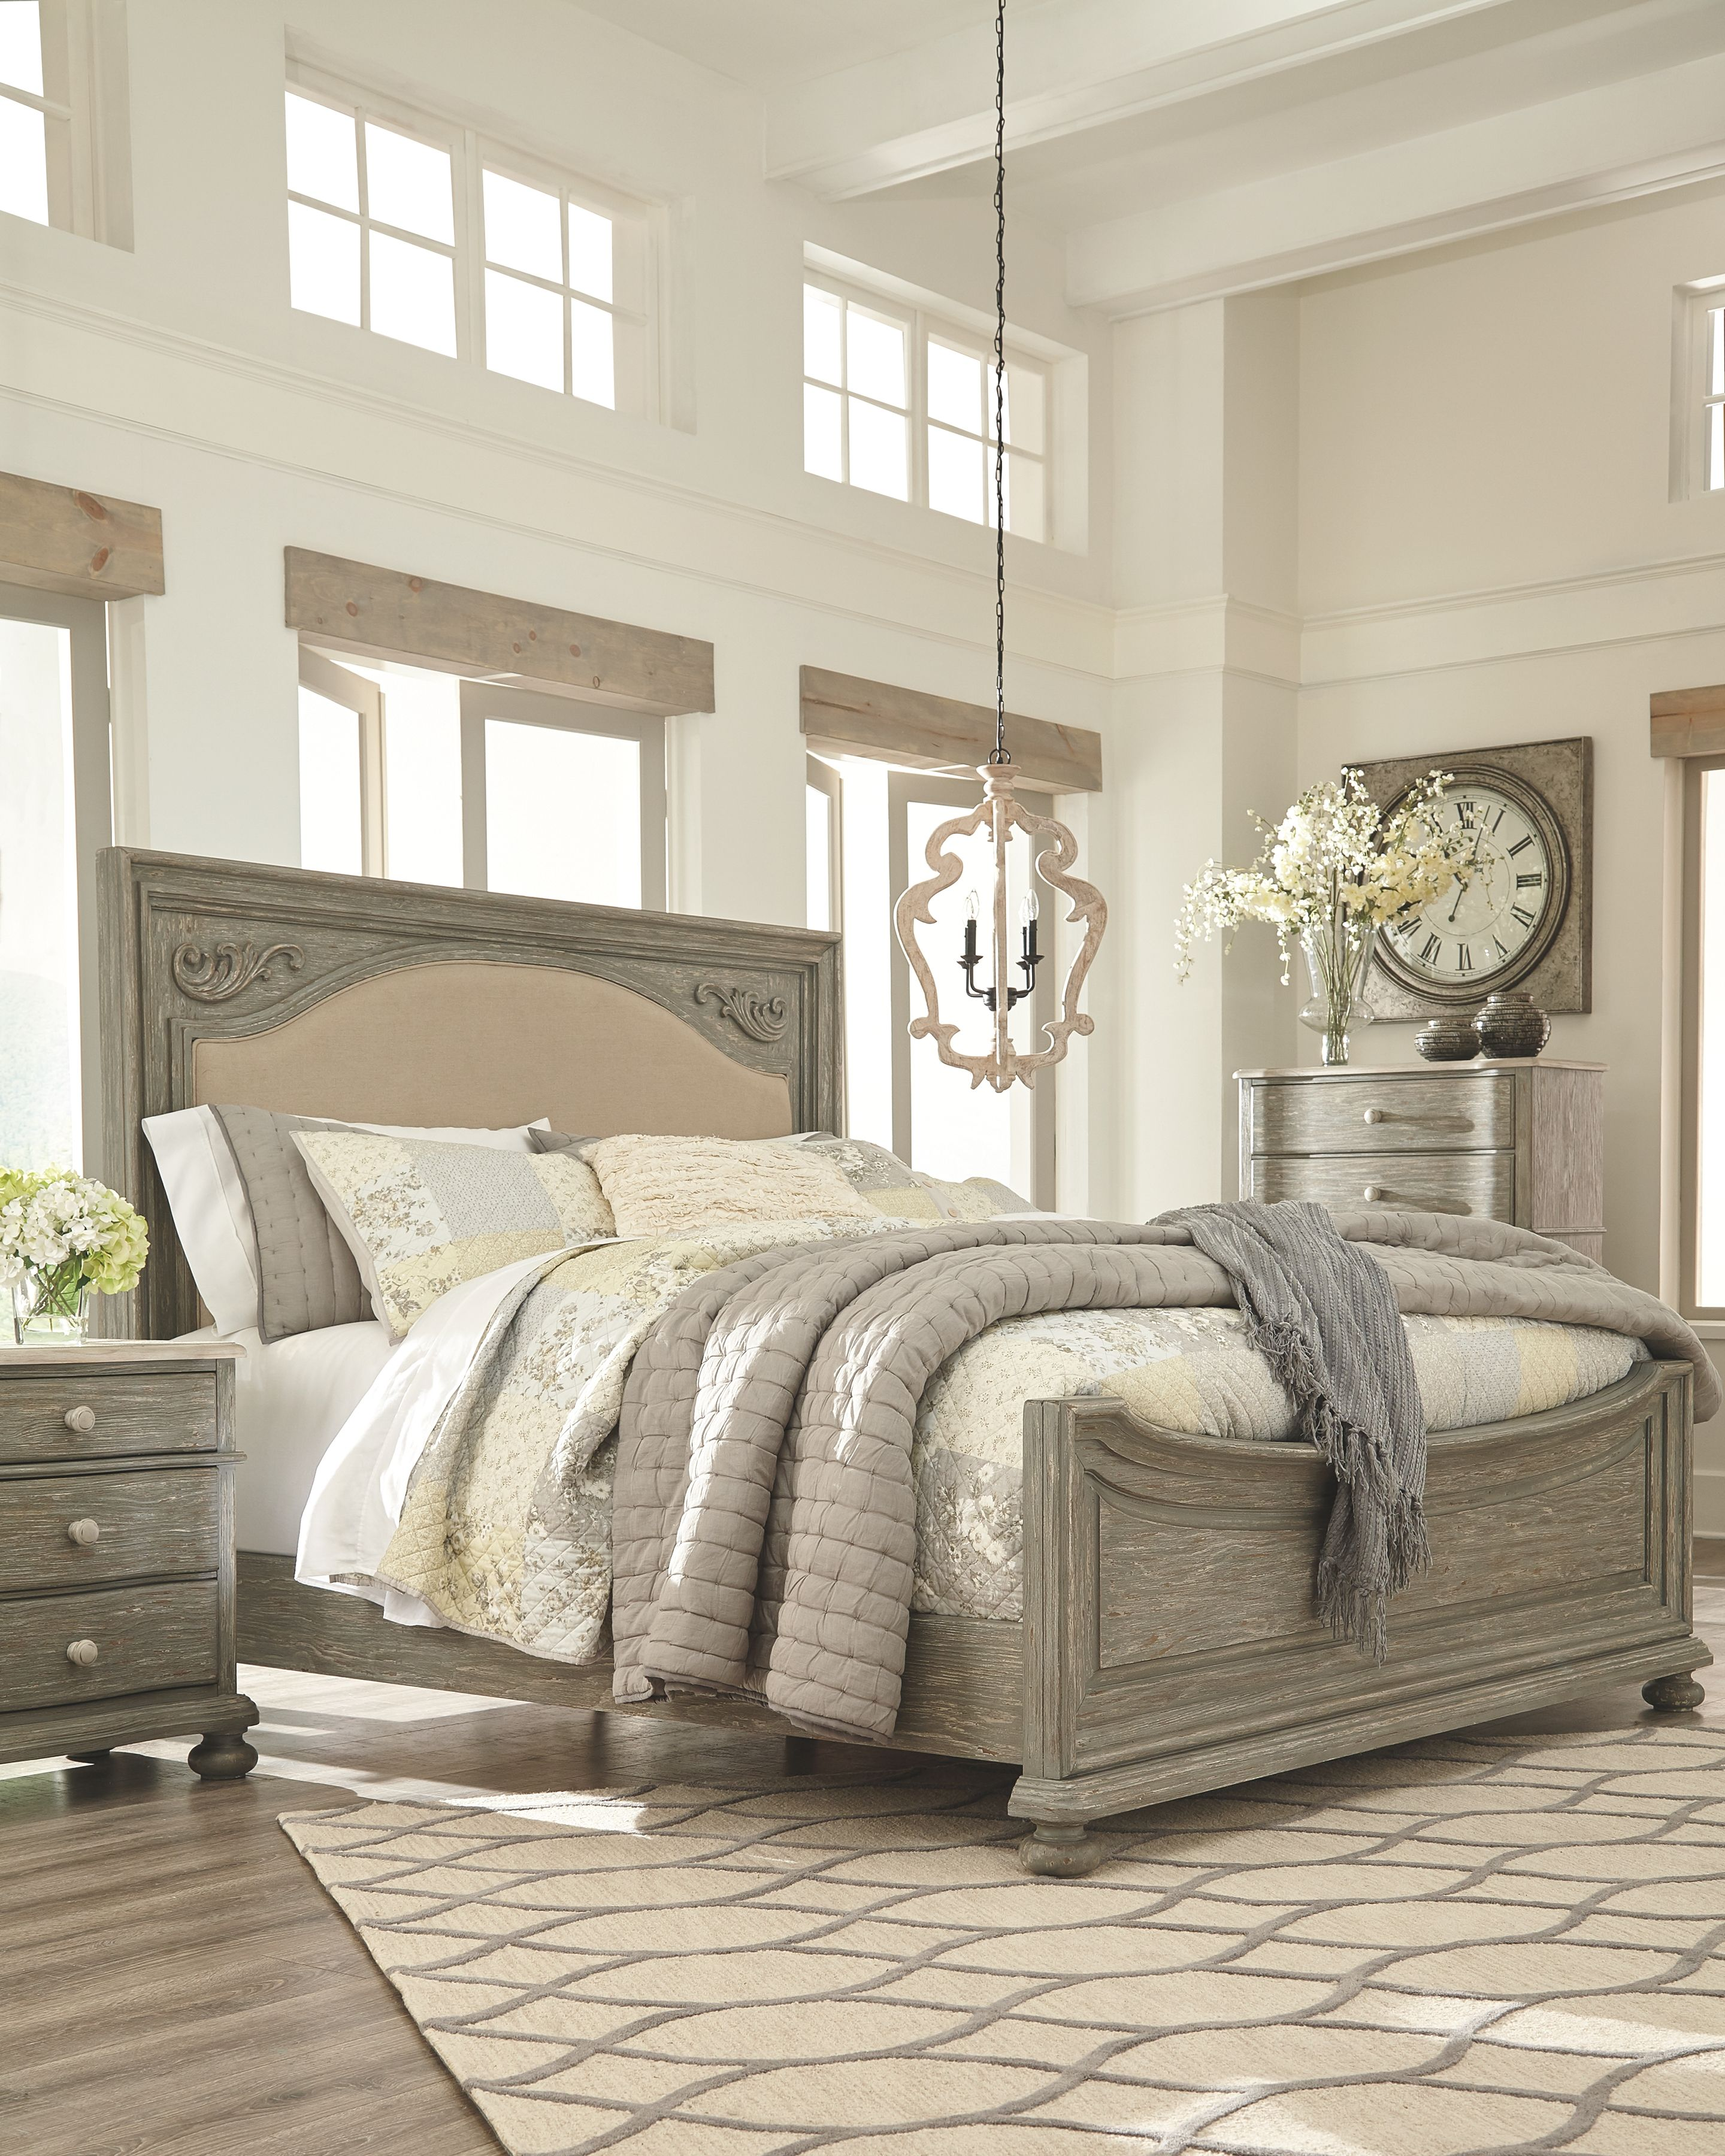 48 Grey Cal King Bedroom Set Newest